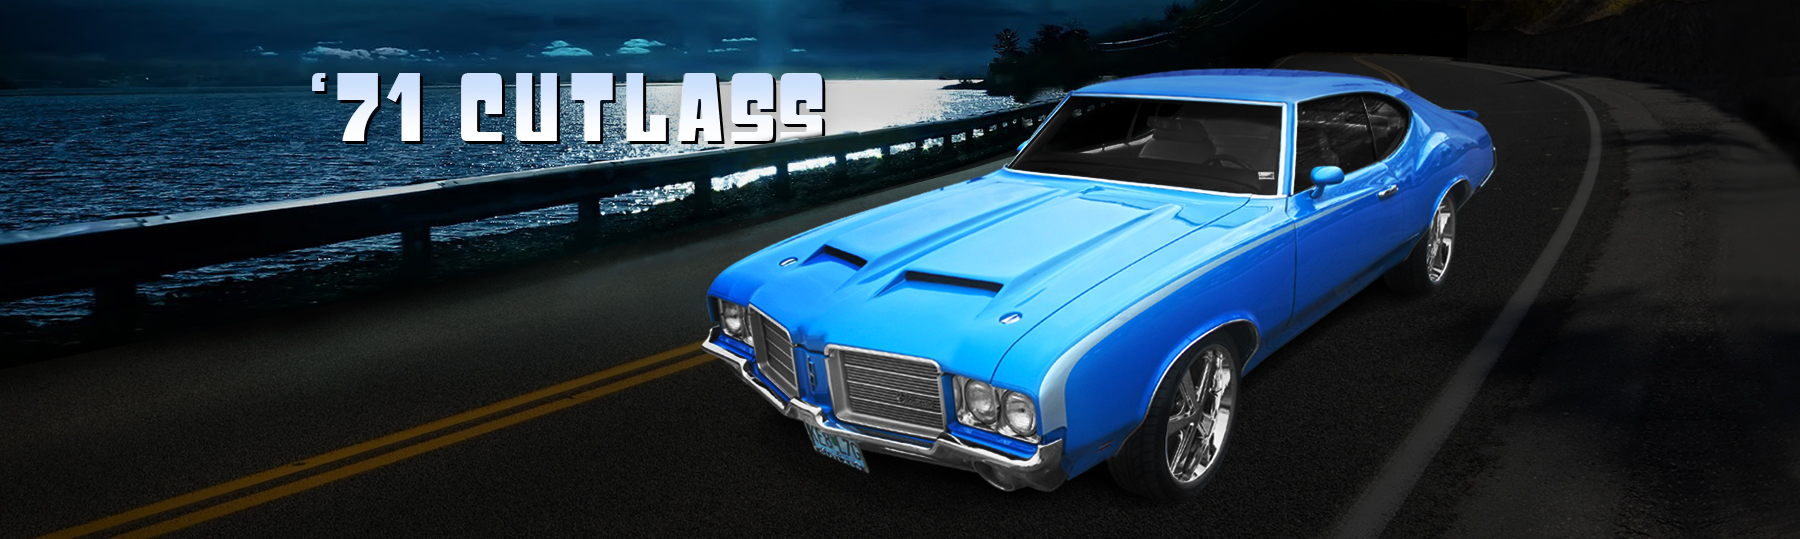 Fineline-71-Cutlass-header-1